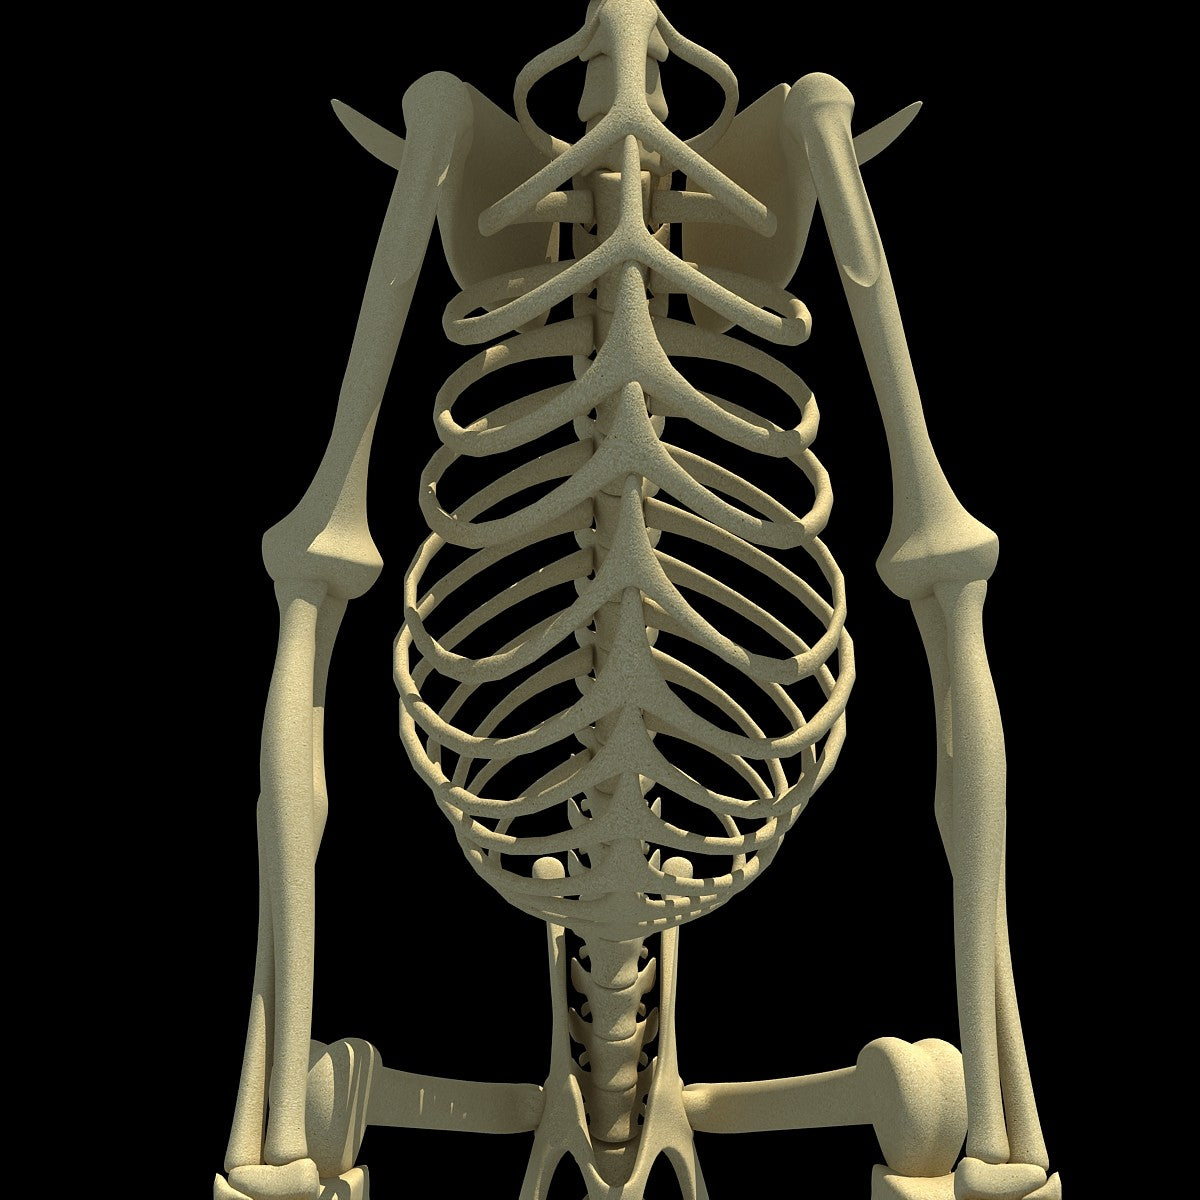 Kangaroo Skeleton Model